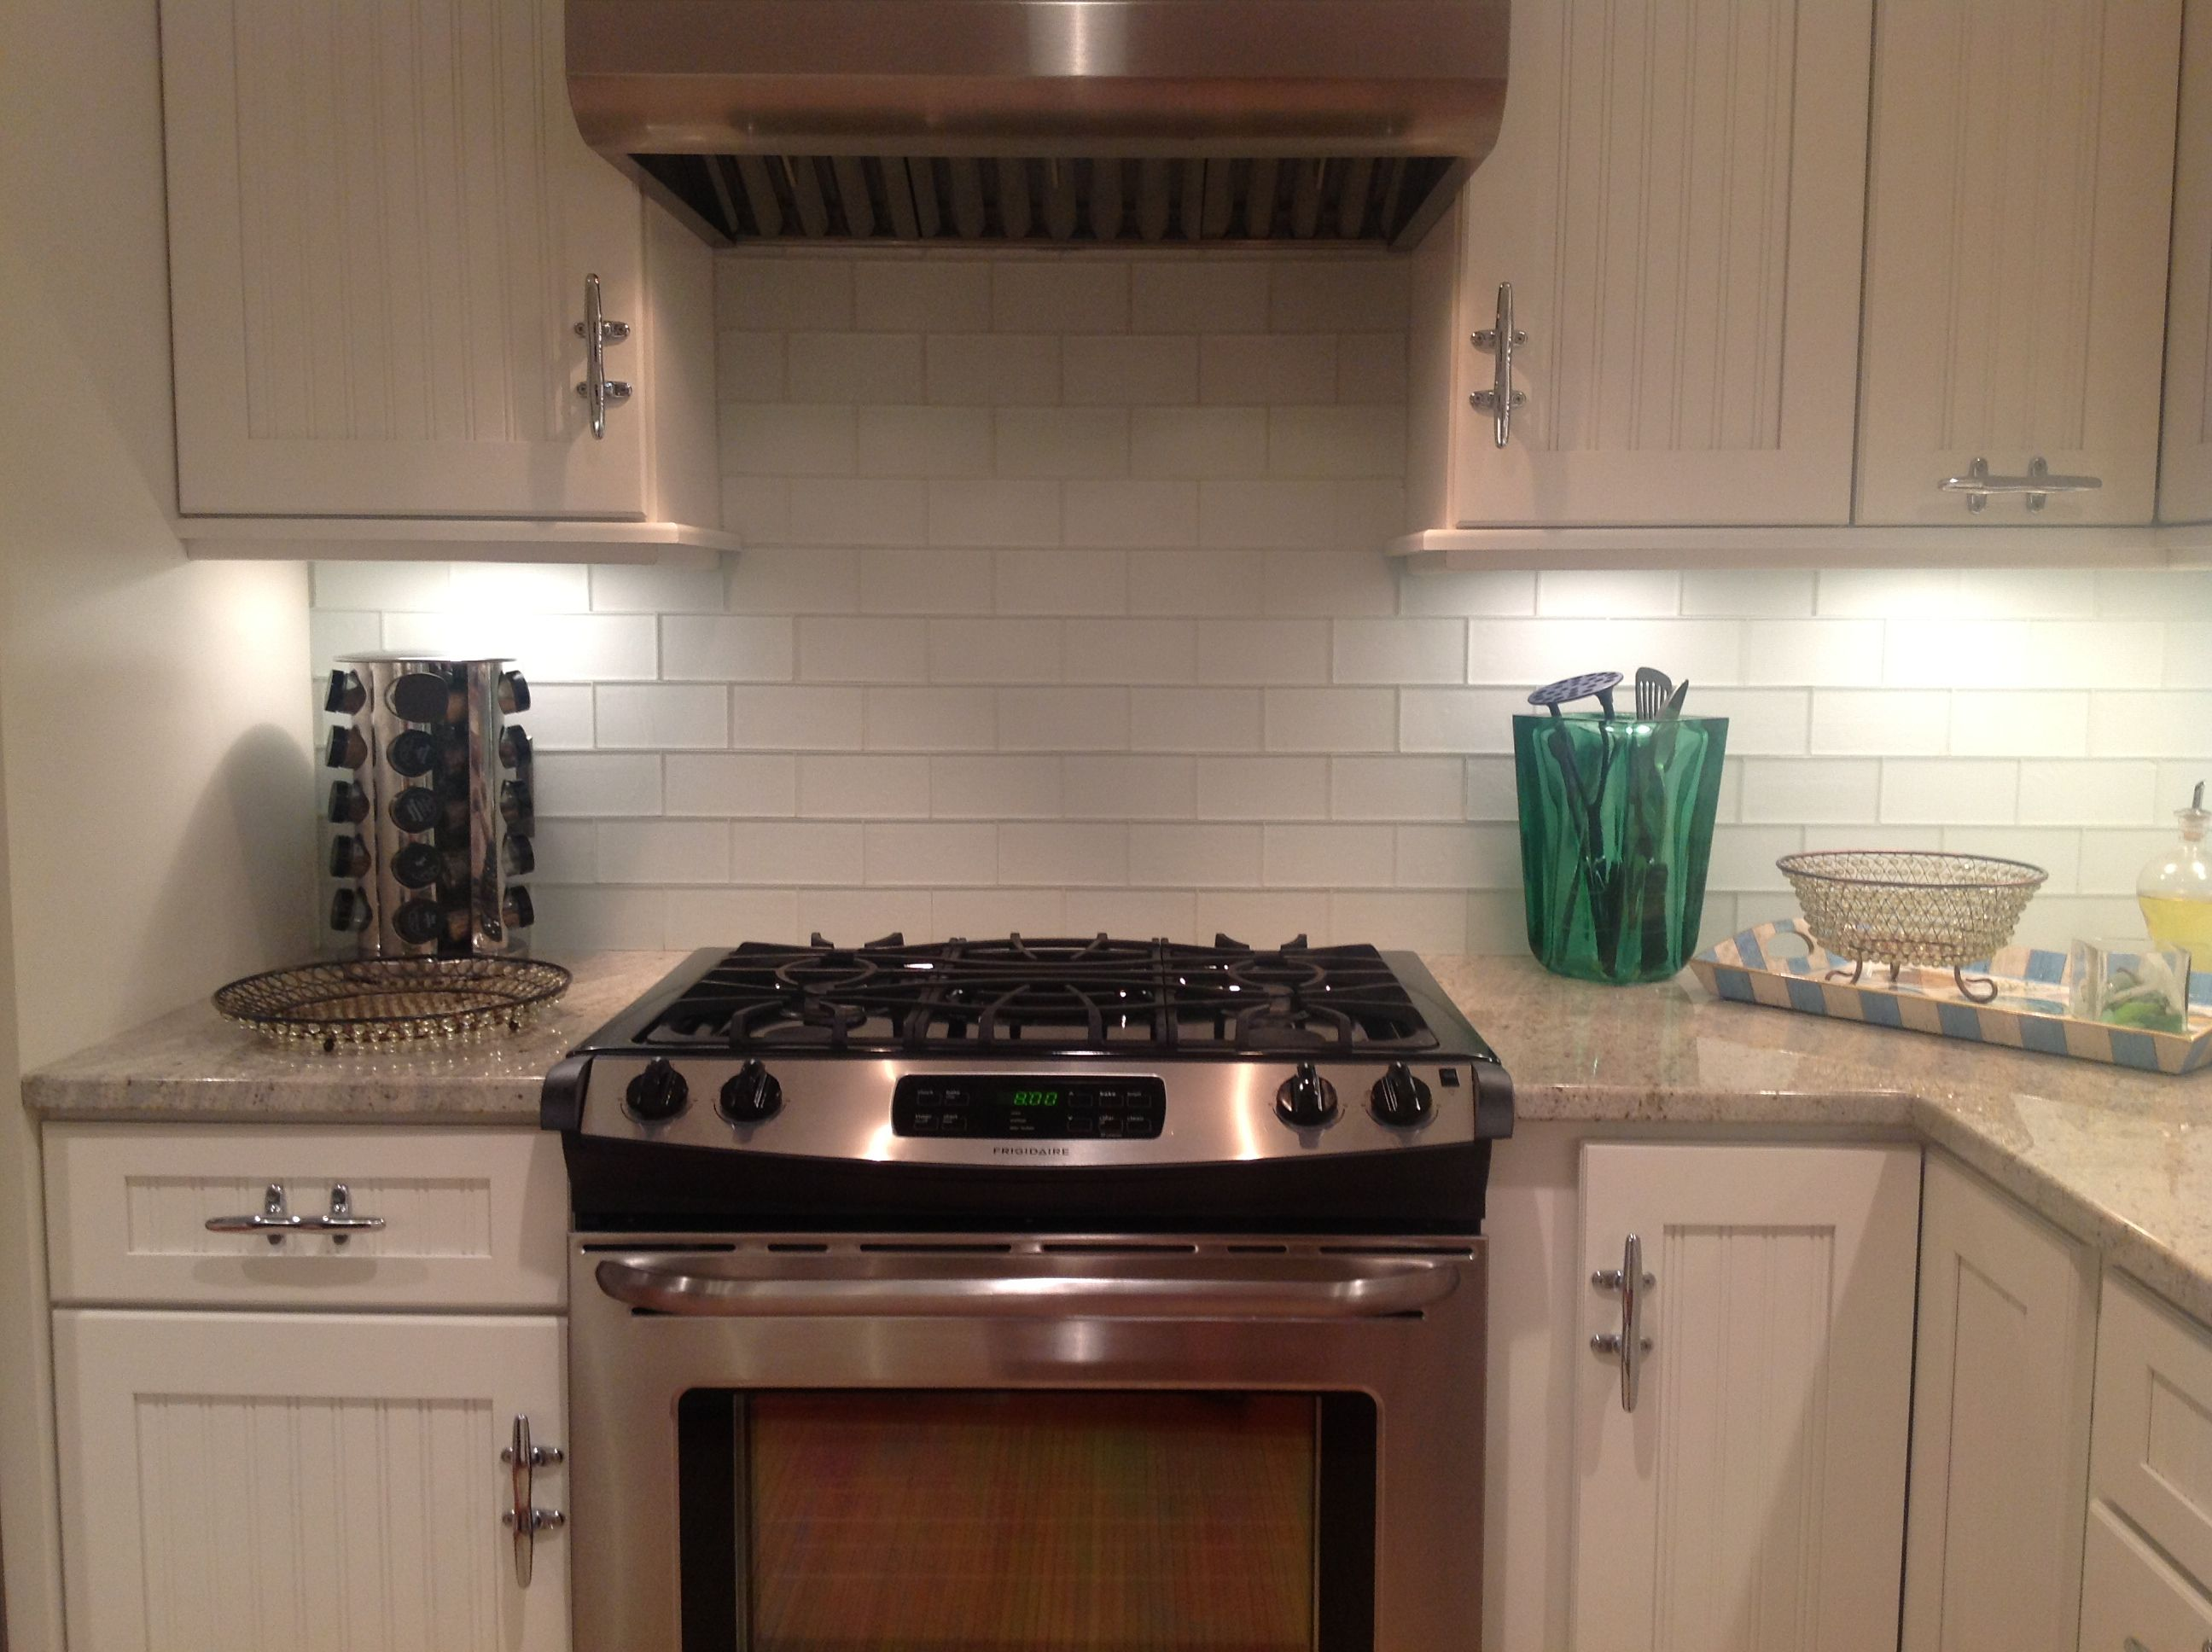 Kitchen Design Subway Tile Backsplash Frosted White Glass Subway Tile Subway Tiles Kitchen